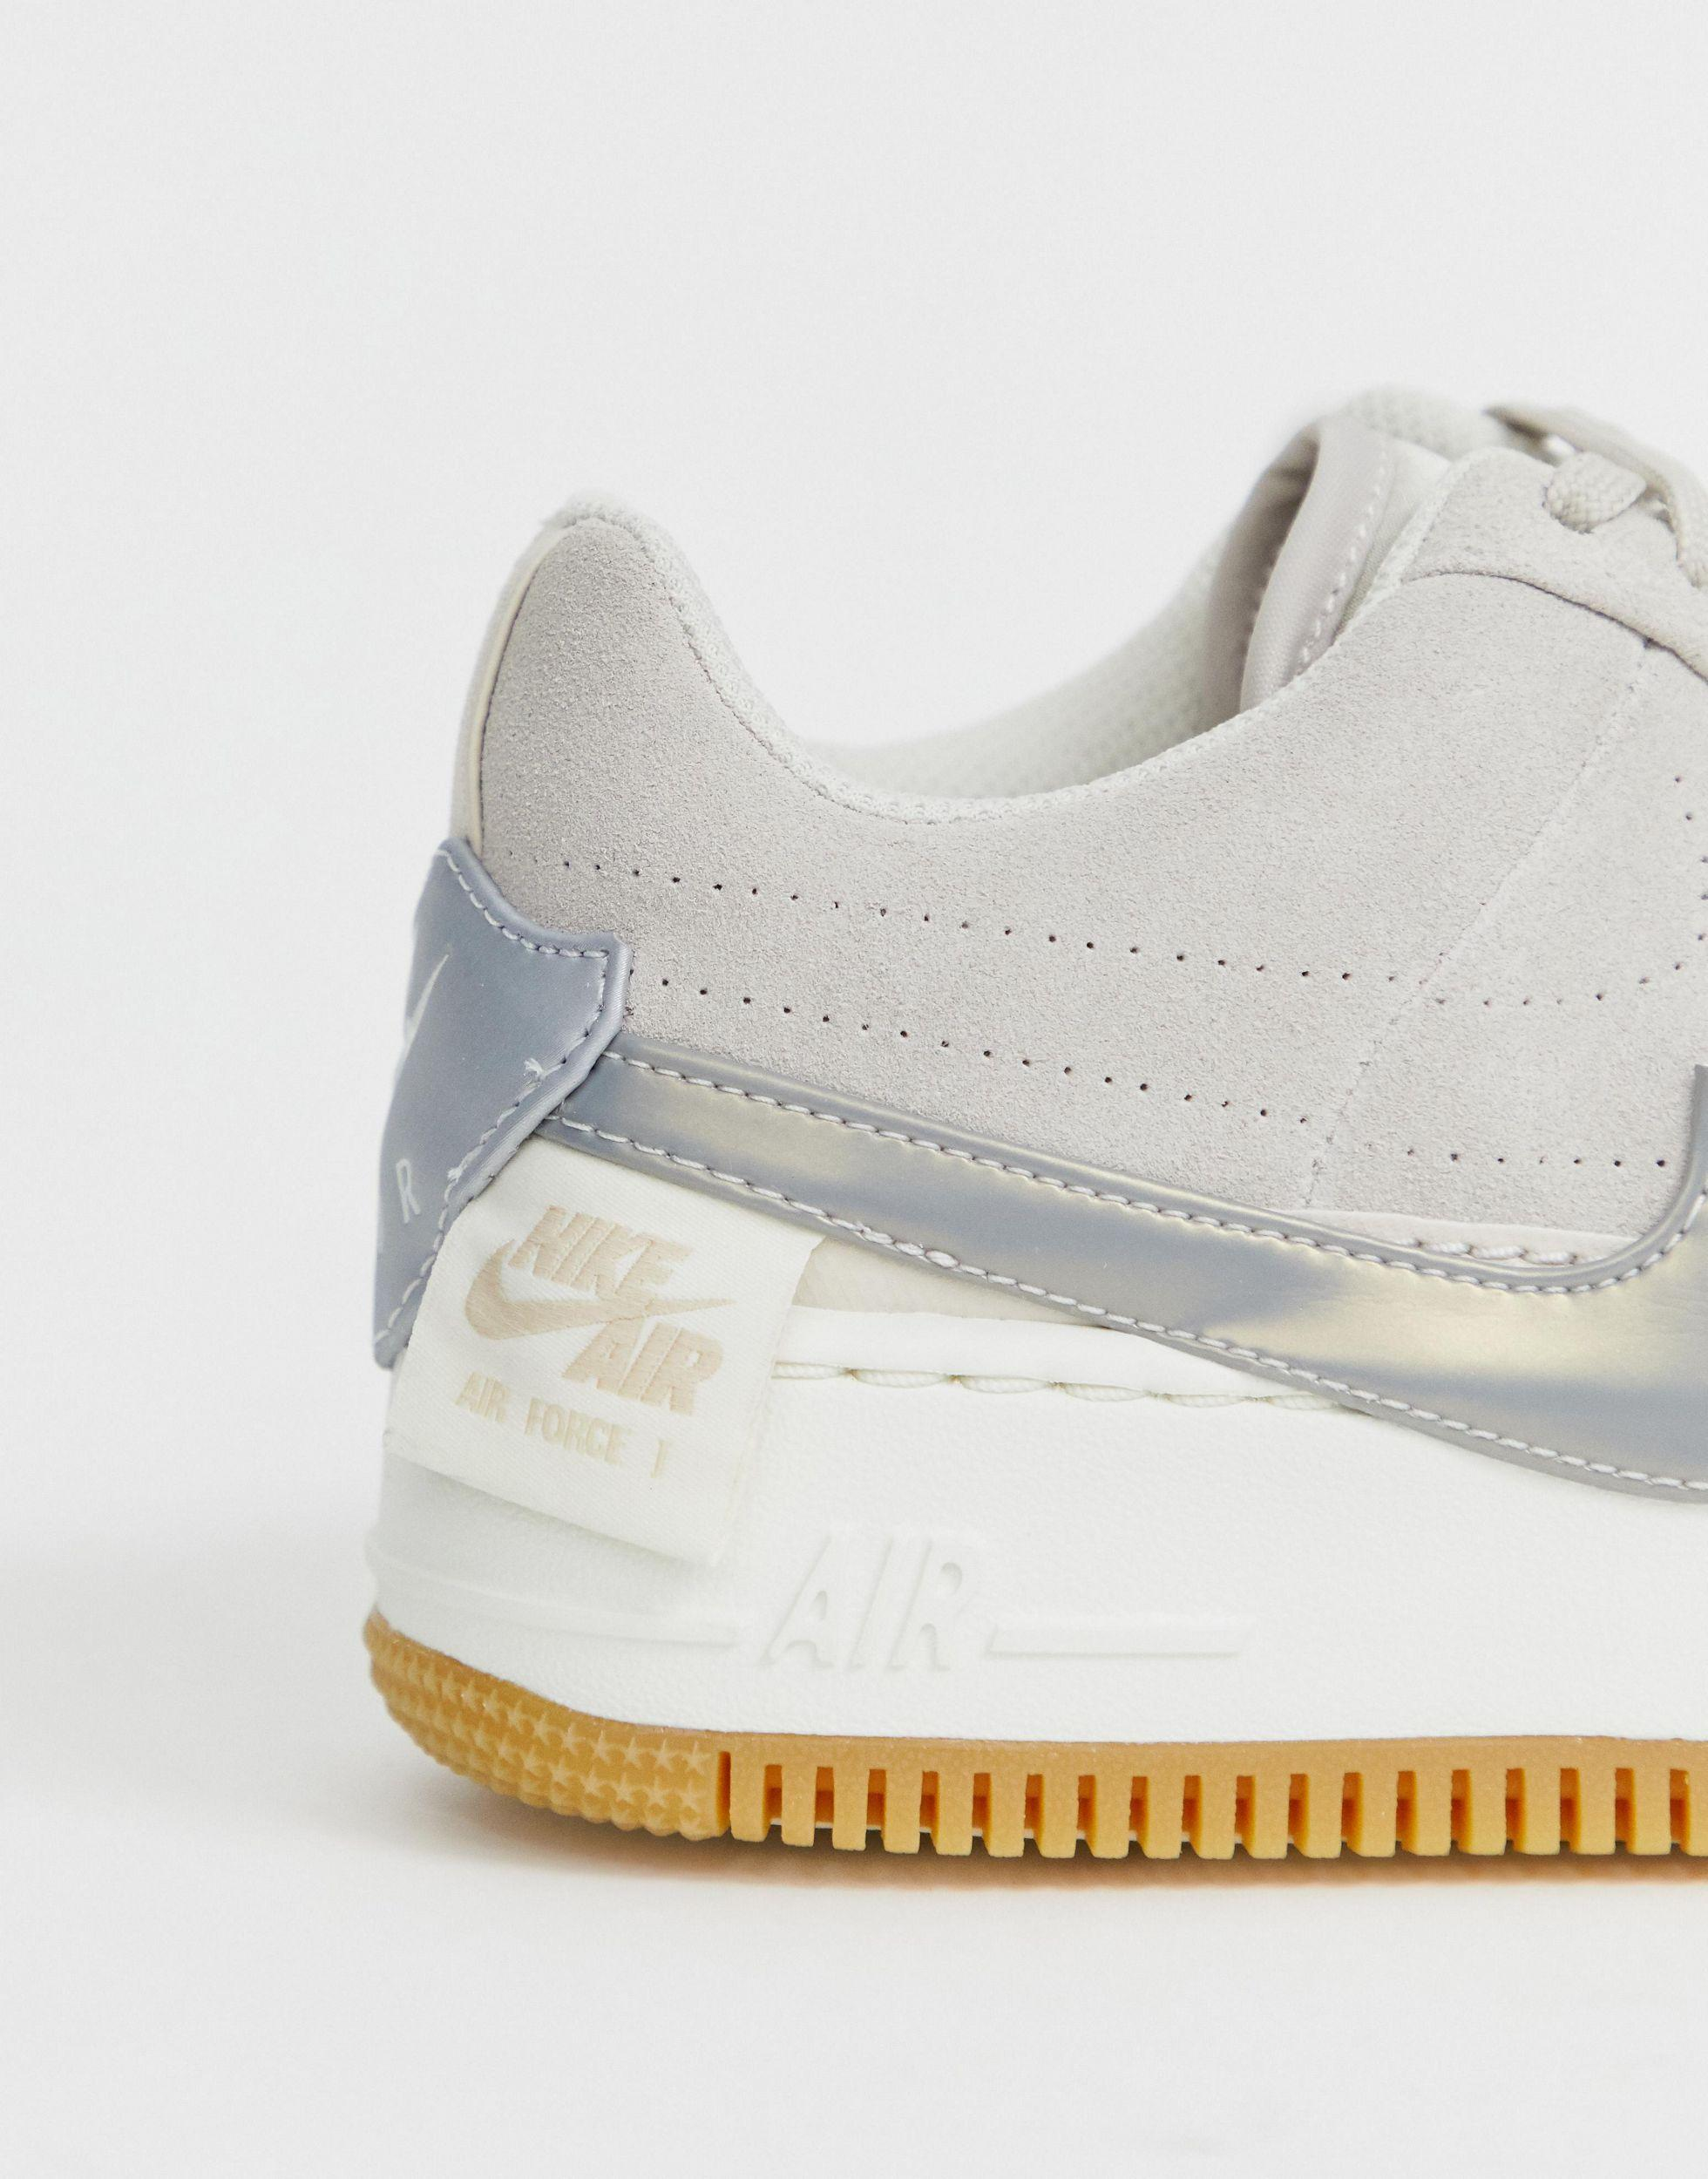 Nike Rubber Sand Air Force 1 Jester